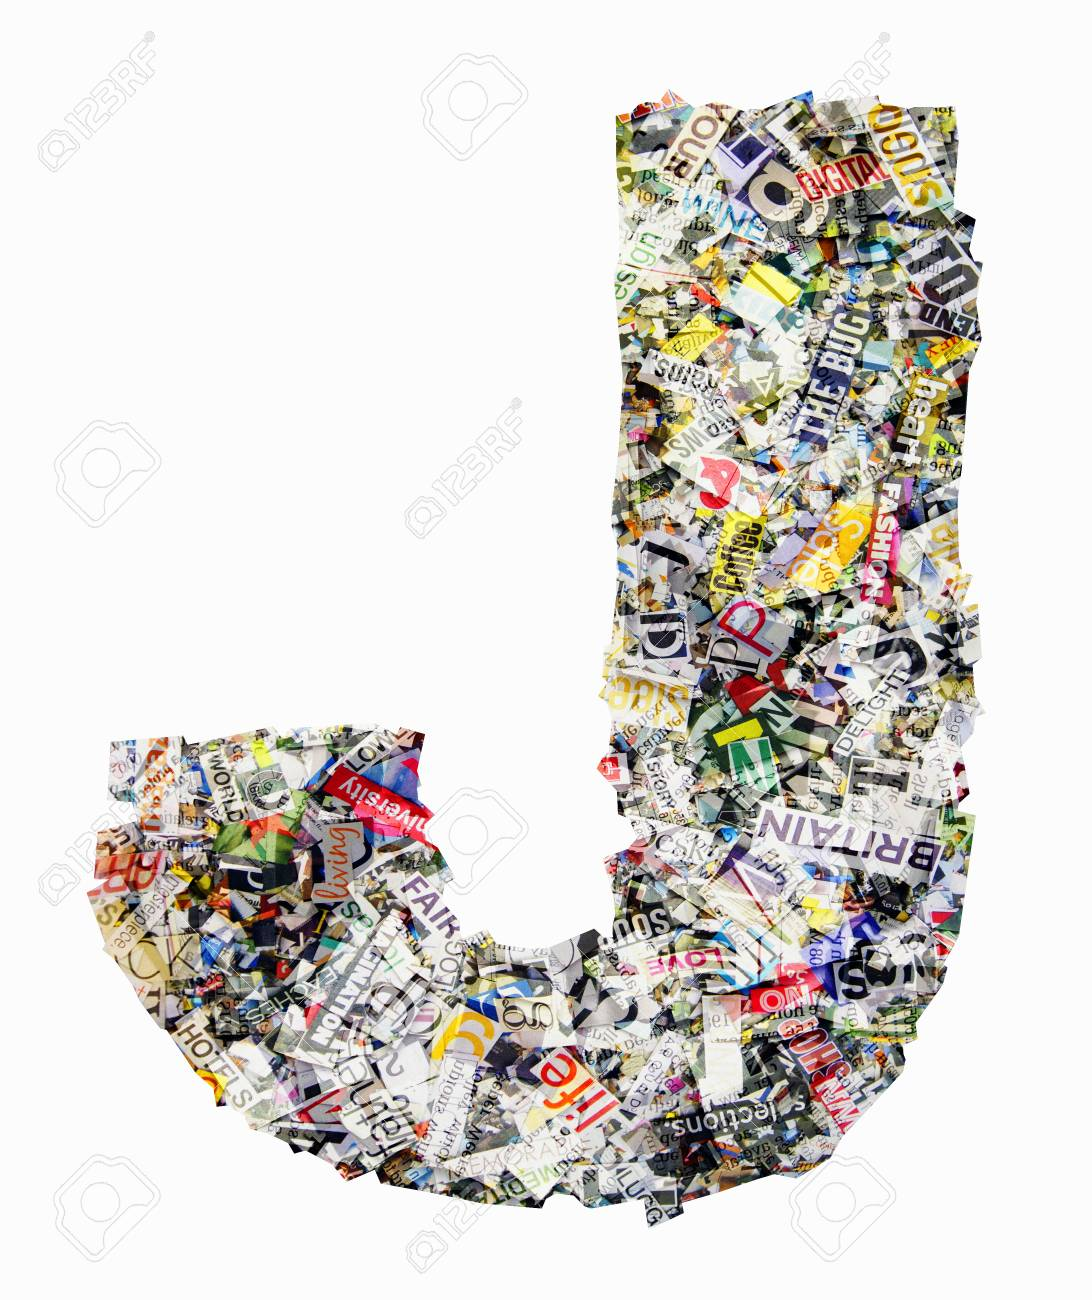 The letter J made from newspaper confetti